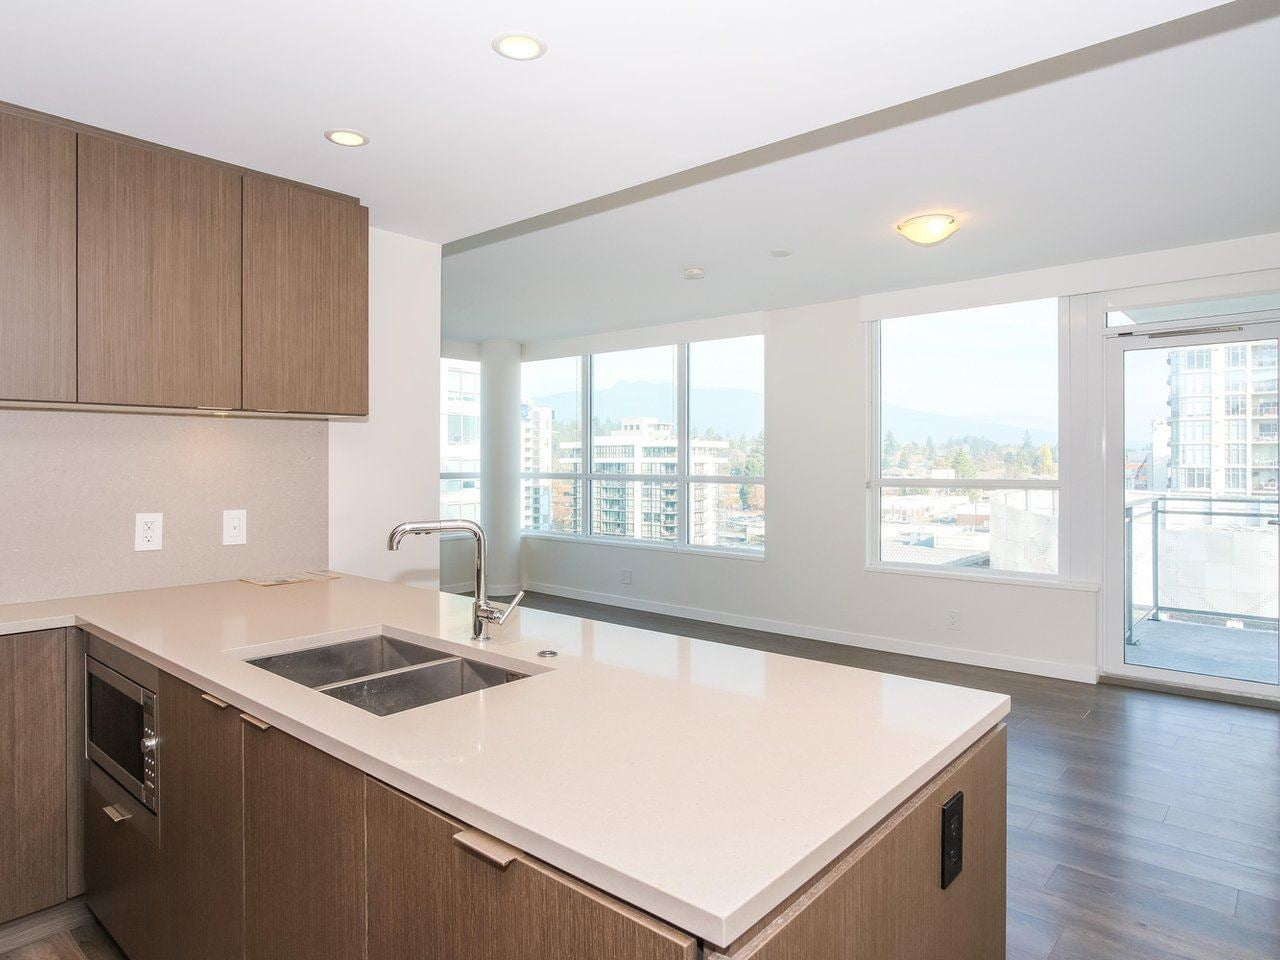 1002 112 E 13TH STREET - Central Lonsdale Apartment/Condo for sale, 2 Bedrooms (R2404786) - #8